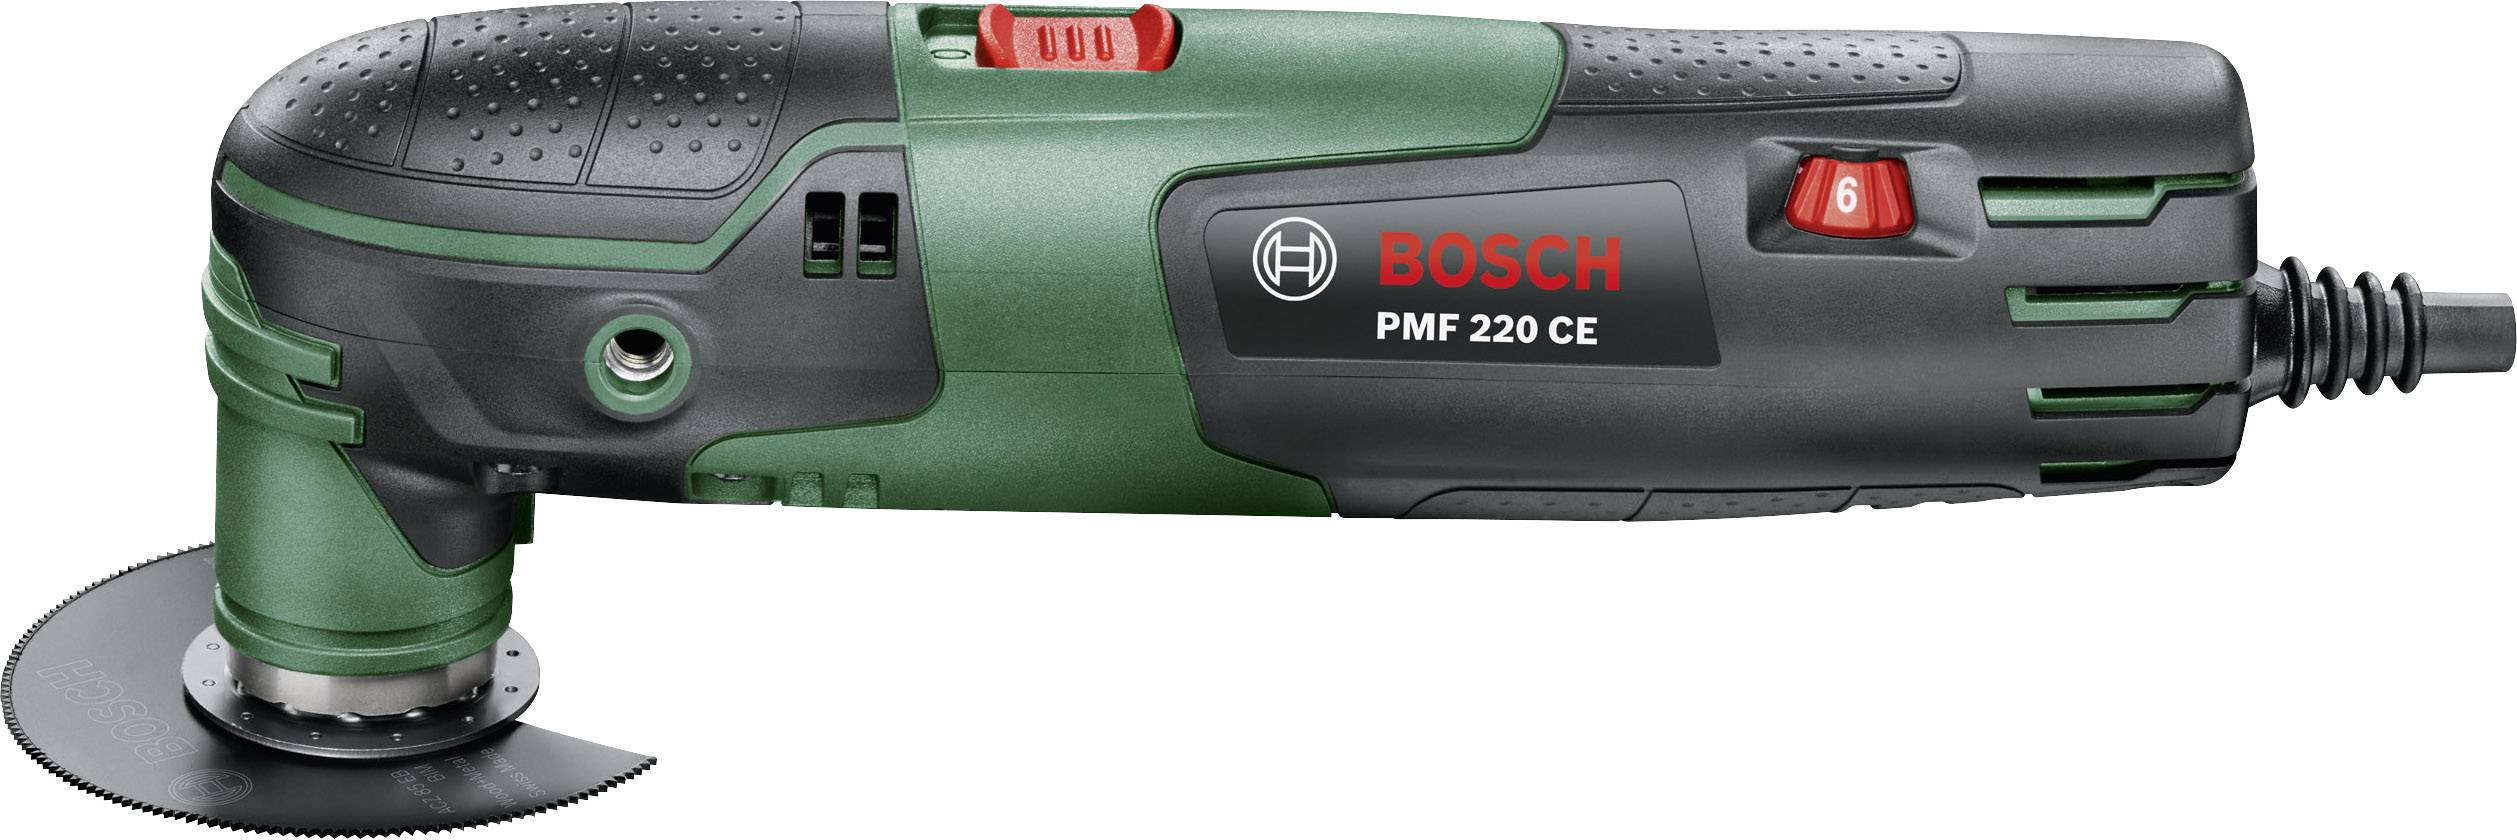 bosch home and garden pmf 220 ce 0603102000 outil